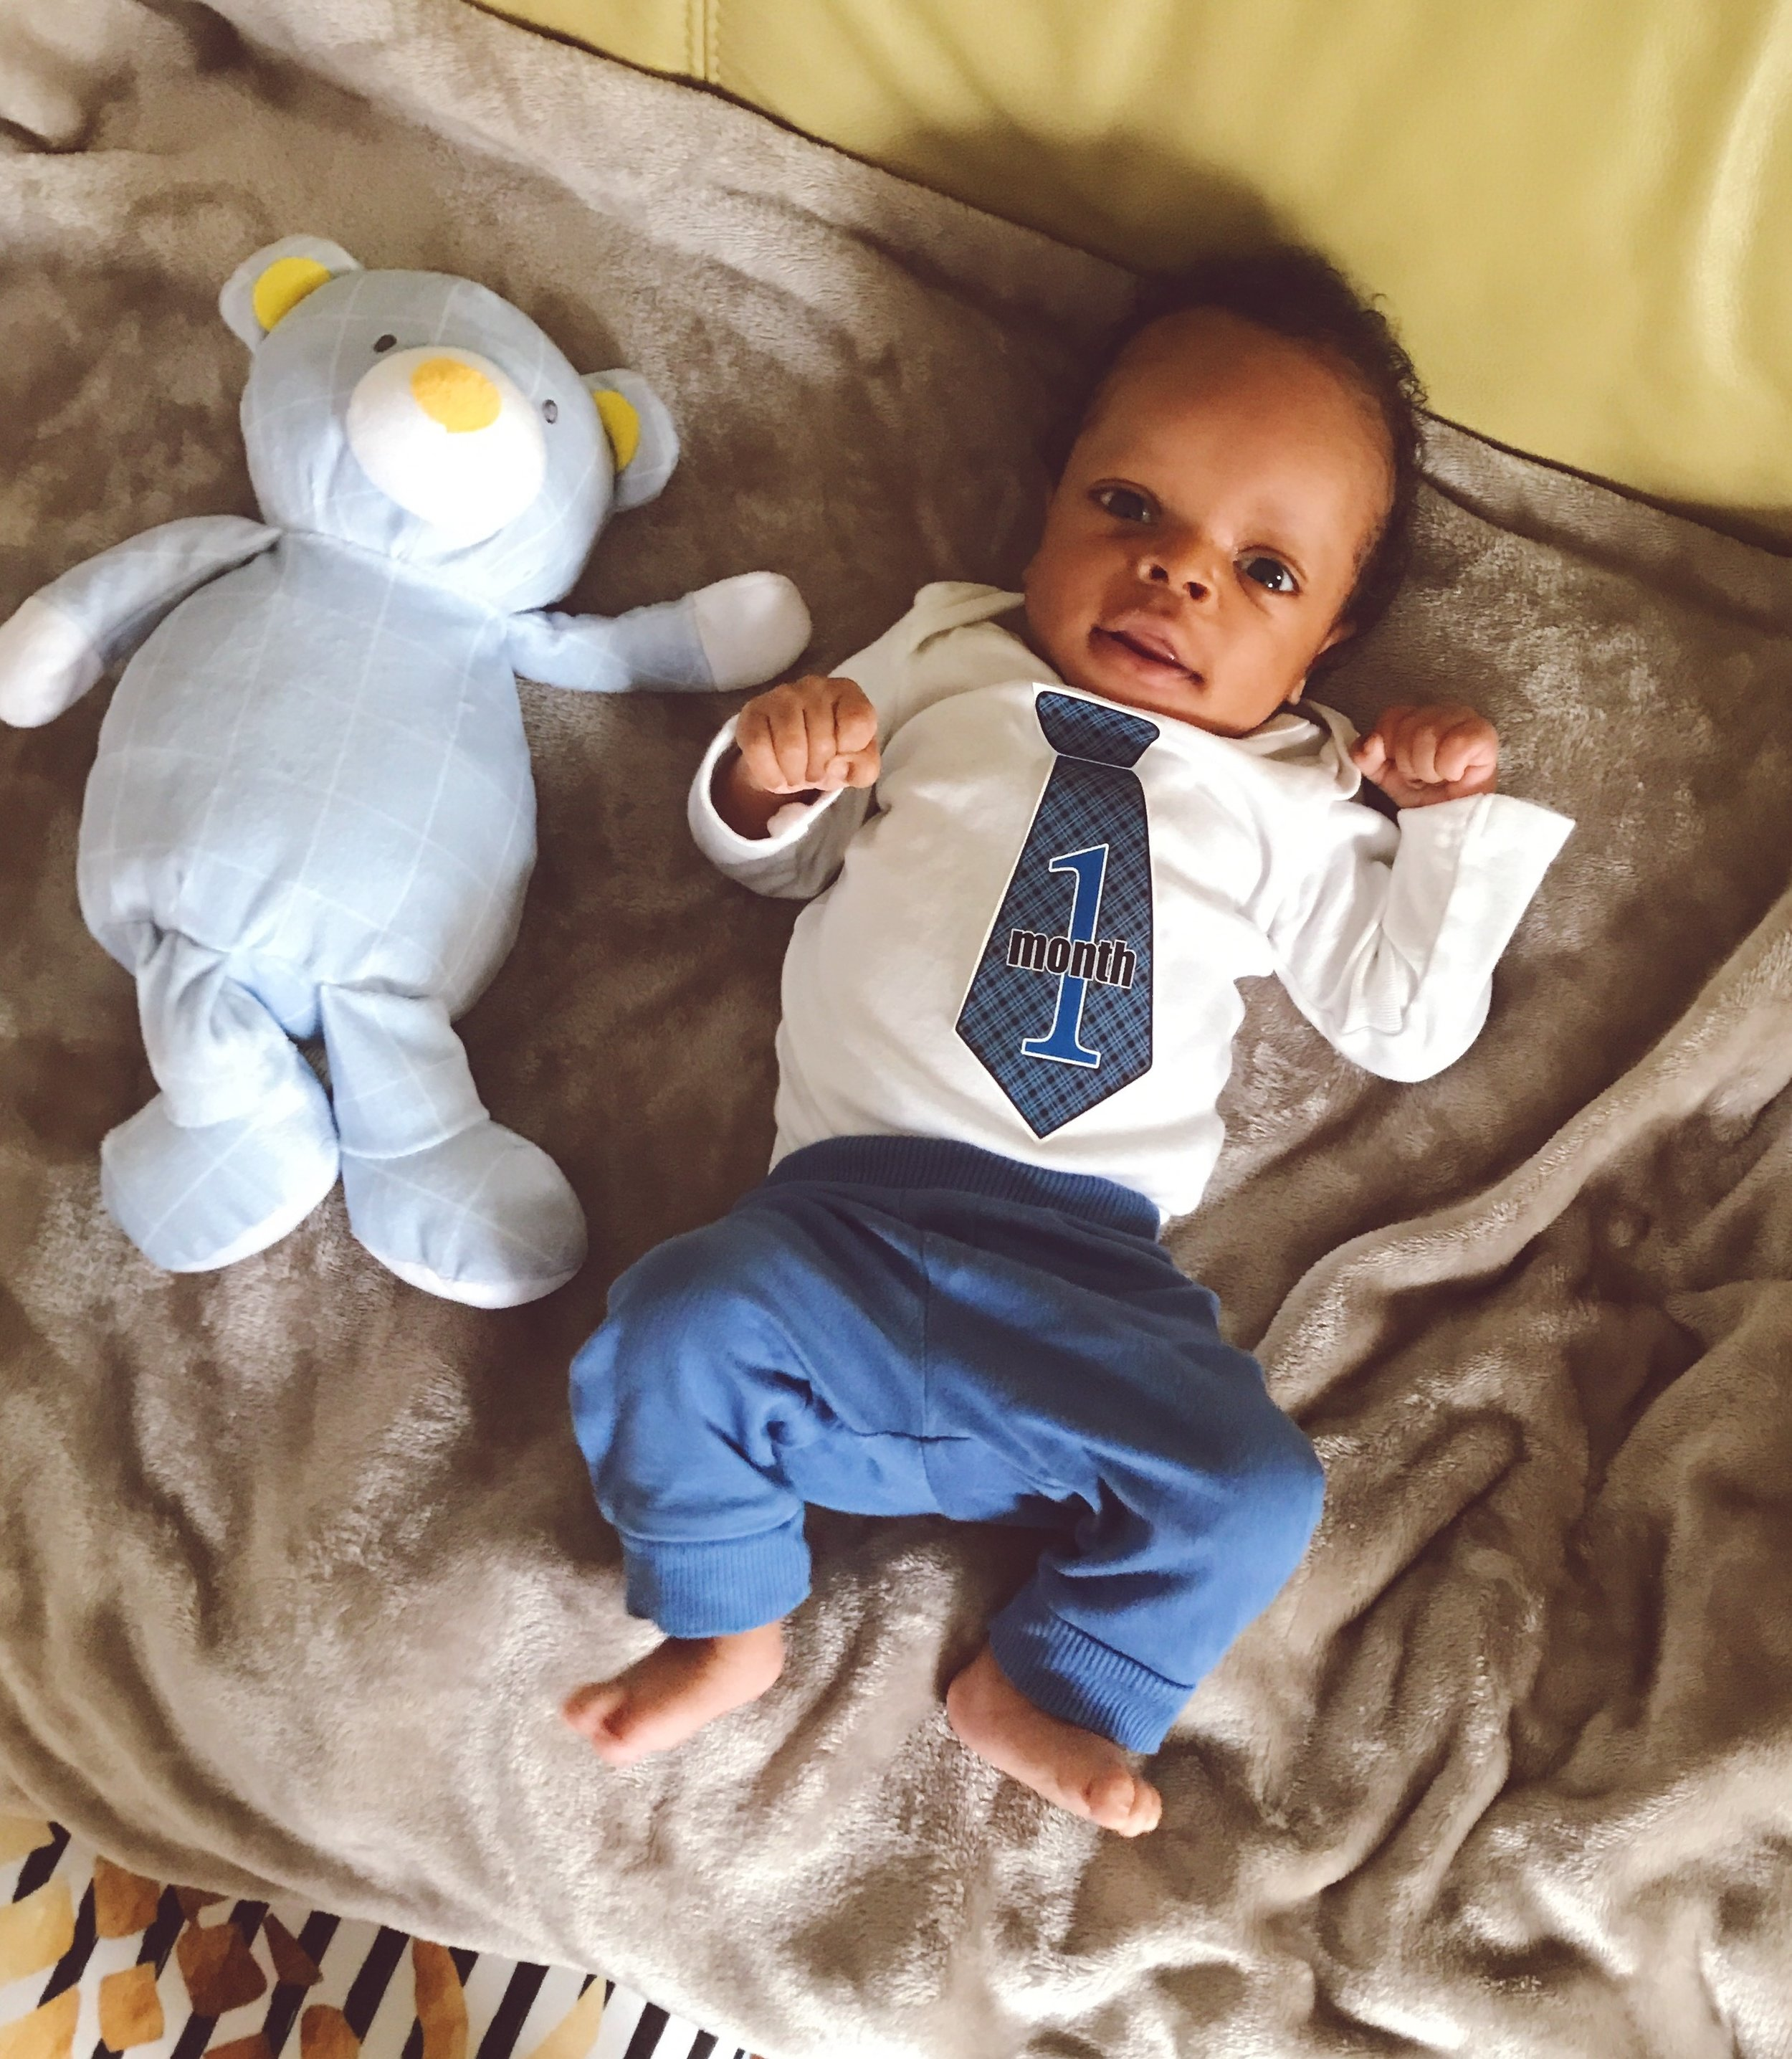 RJ at one month old.